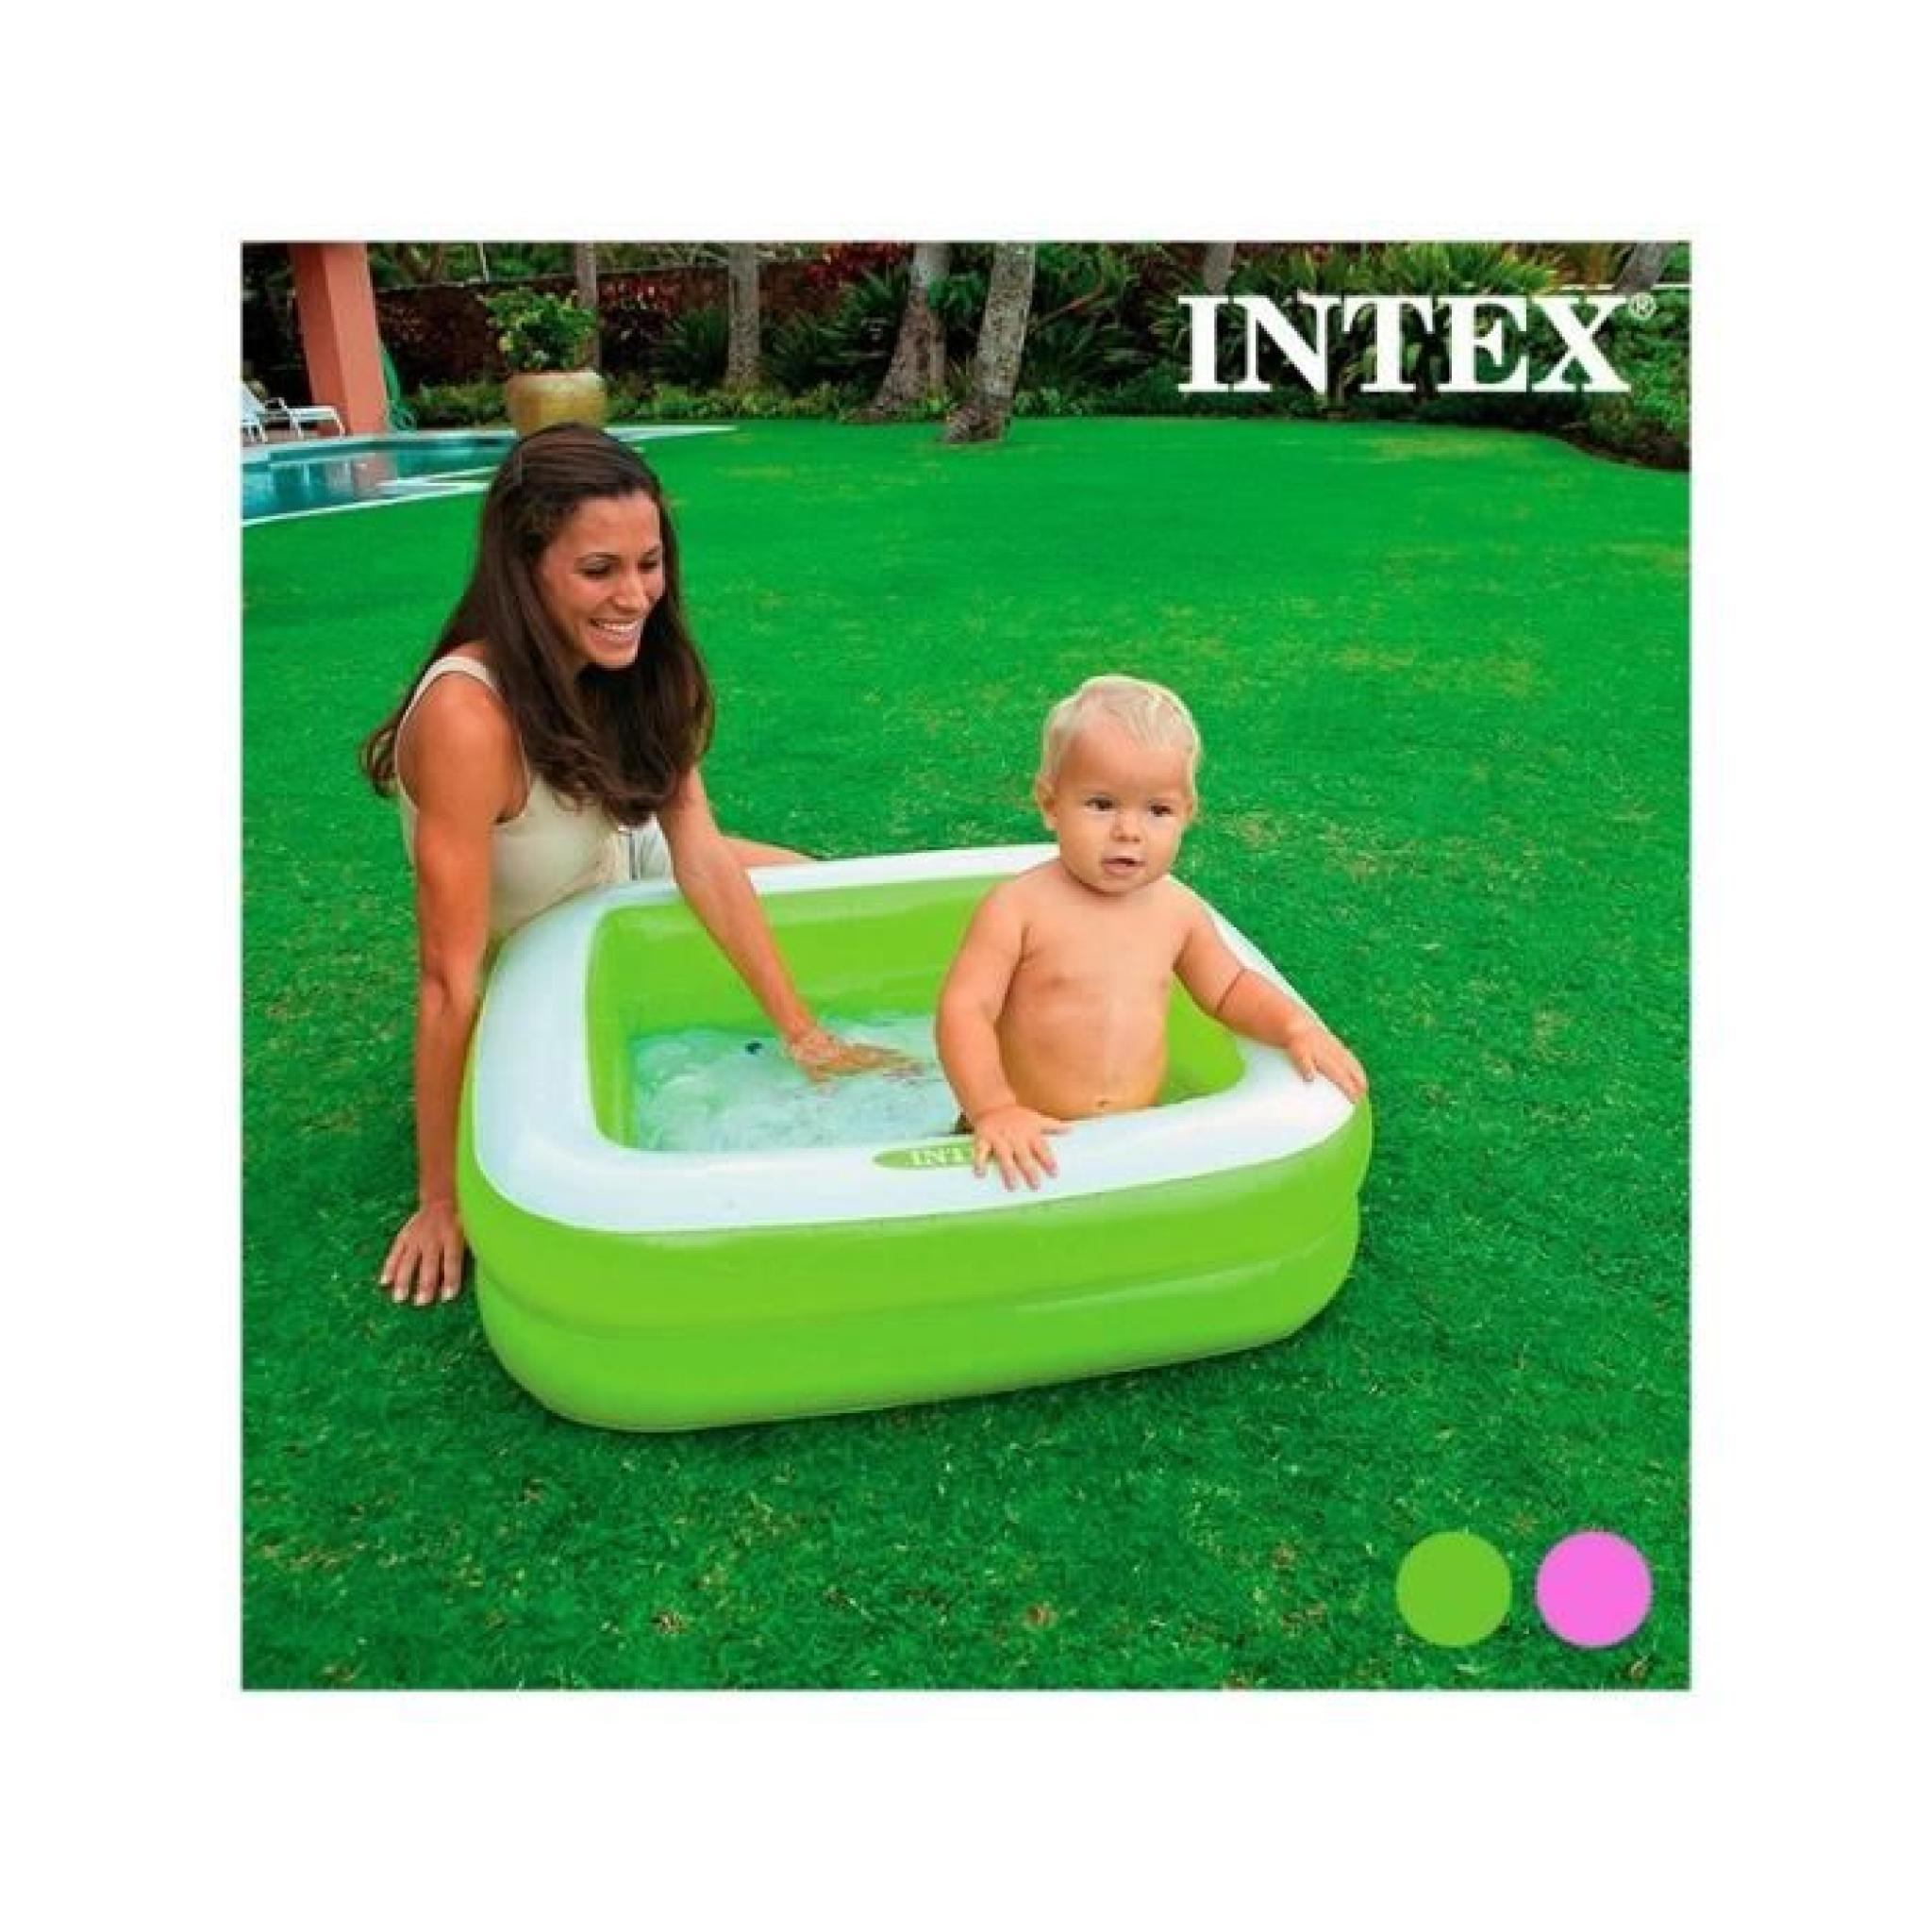 Piscine gonflable carr e pour enfants intex rose for Piscine intex gonflable